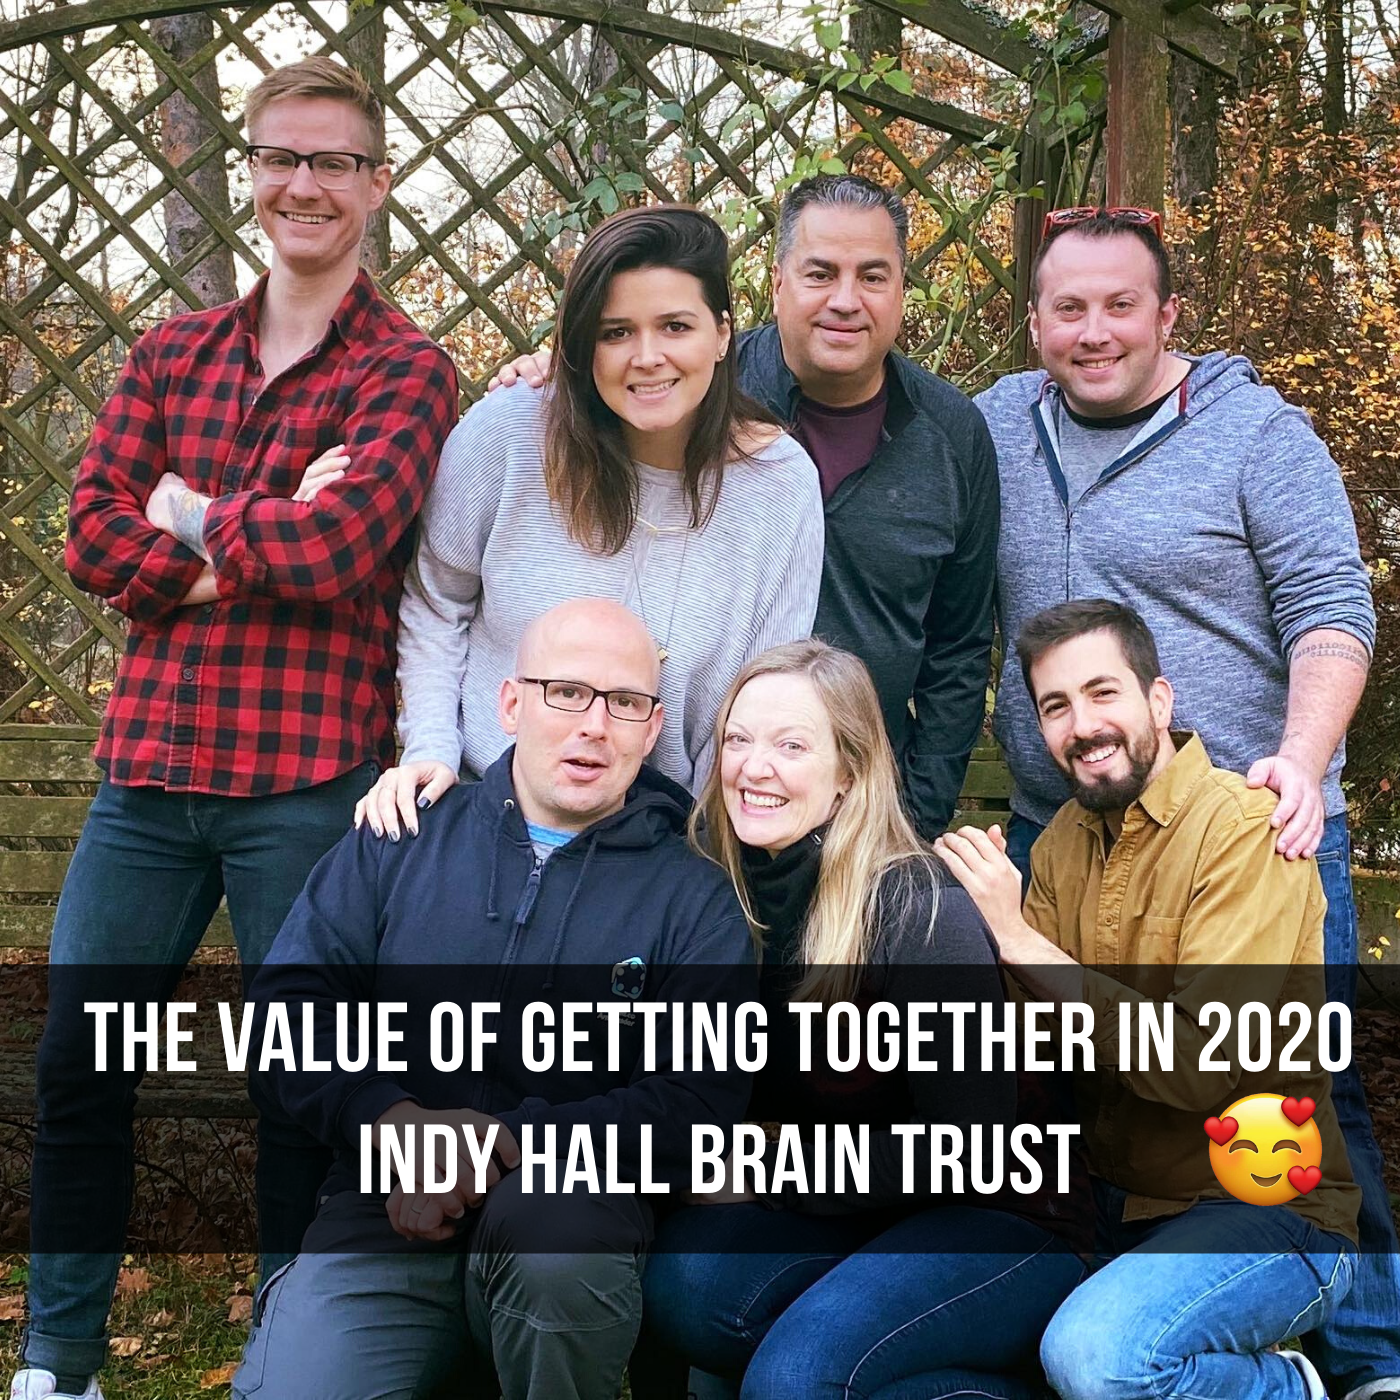 The Value Of Getting Together In 2020 – Indy Hall Brain Trust